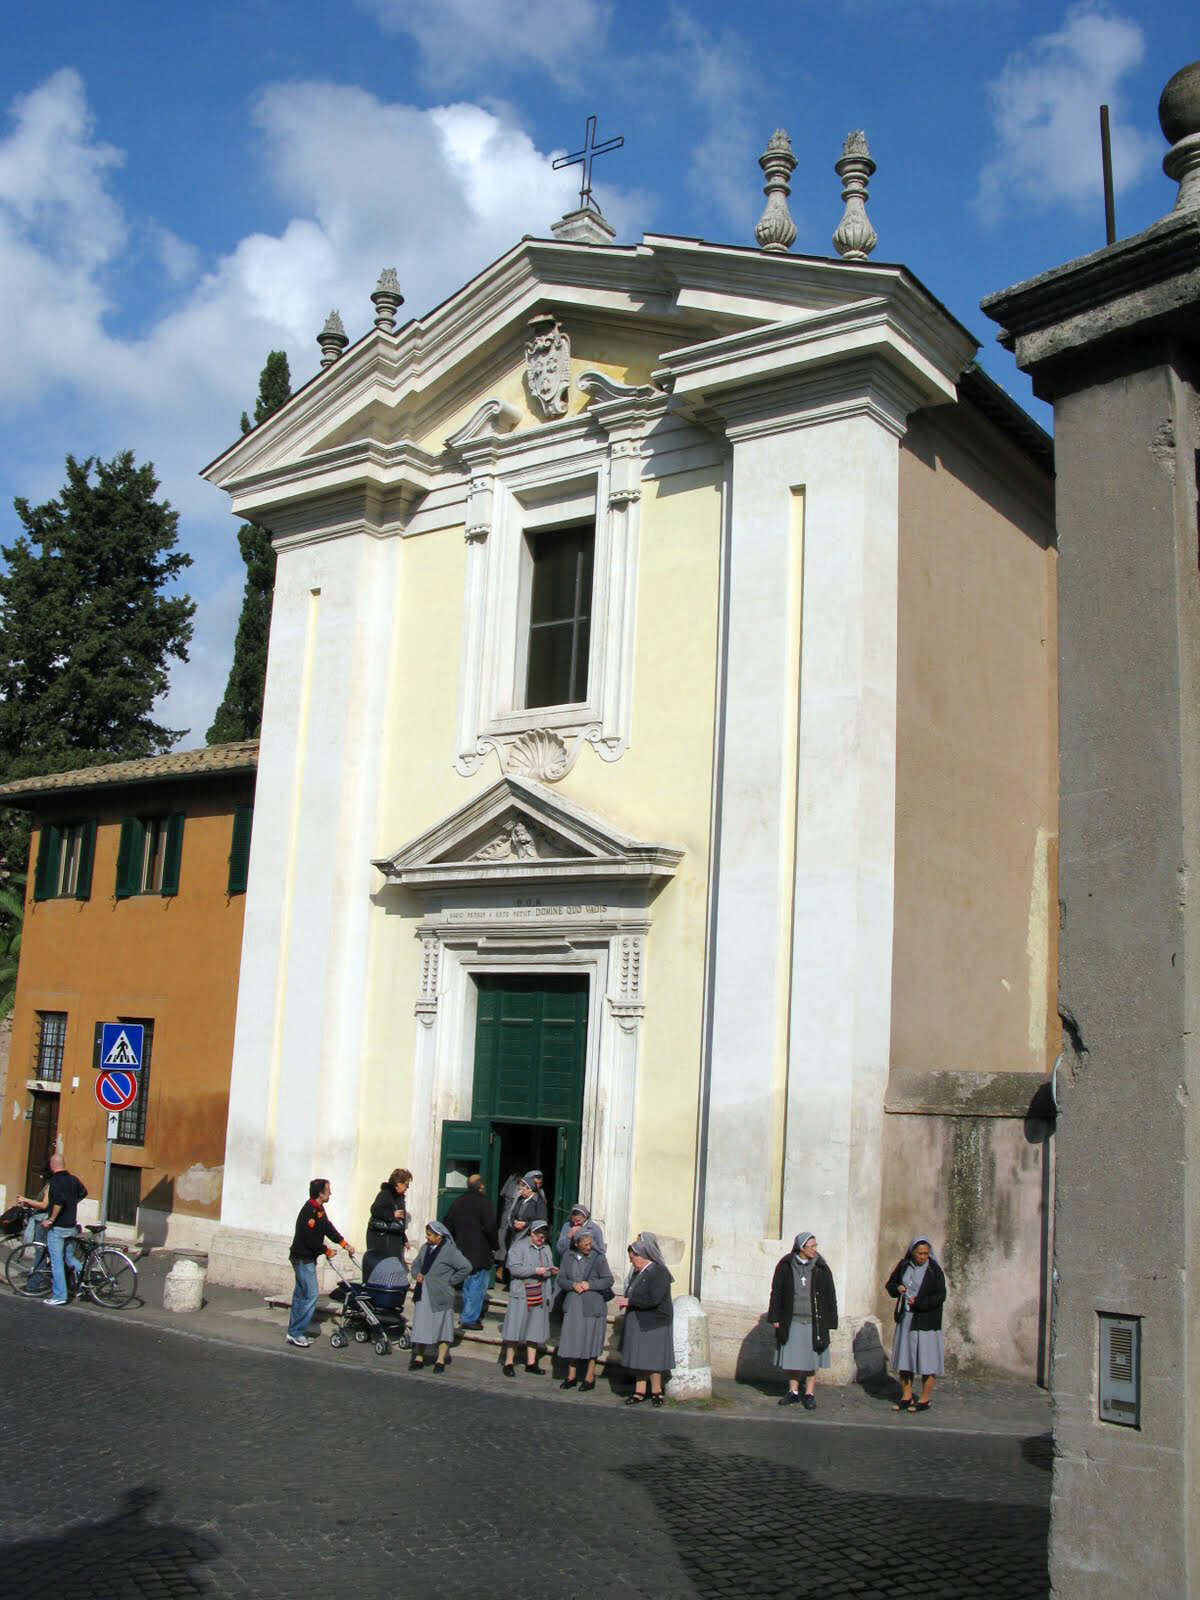 Worshippers gather outside the Domine Quo Vadis Church along Rome's Appian Way, where St. Peter purportedly had a vision of Jesus.